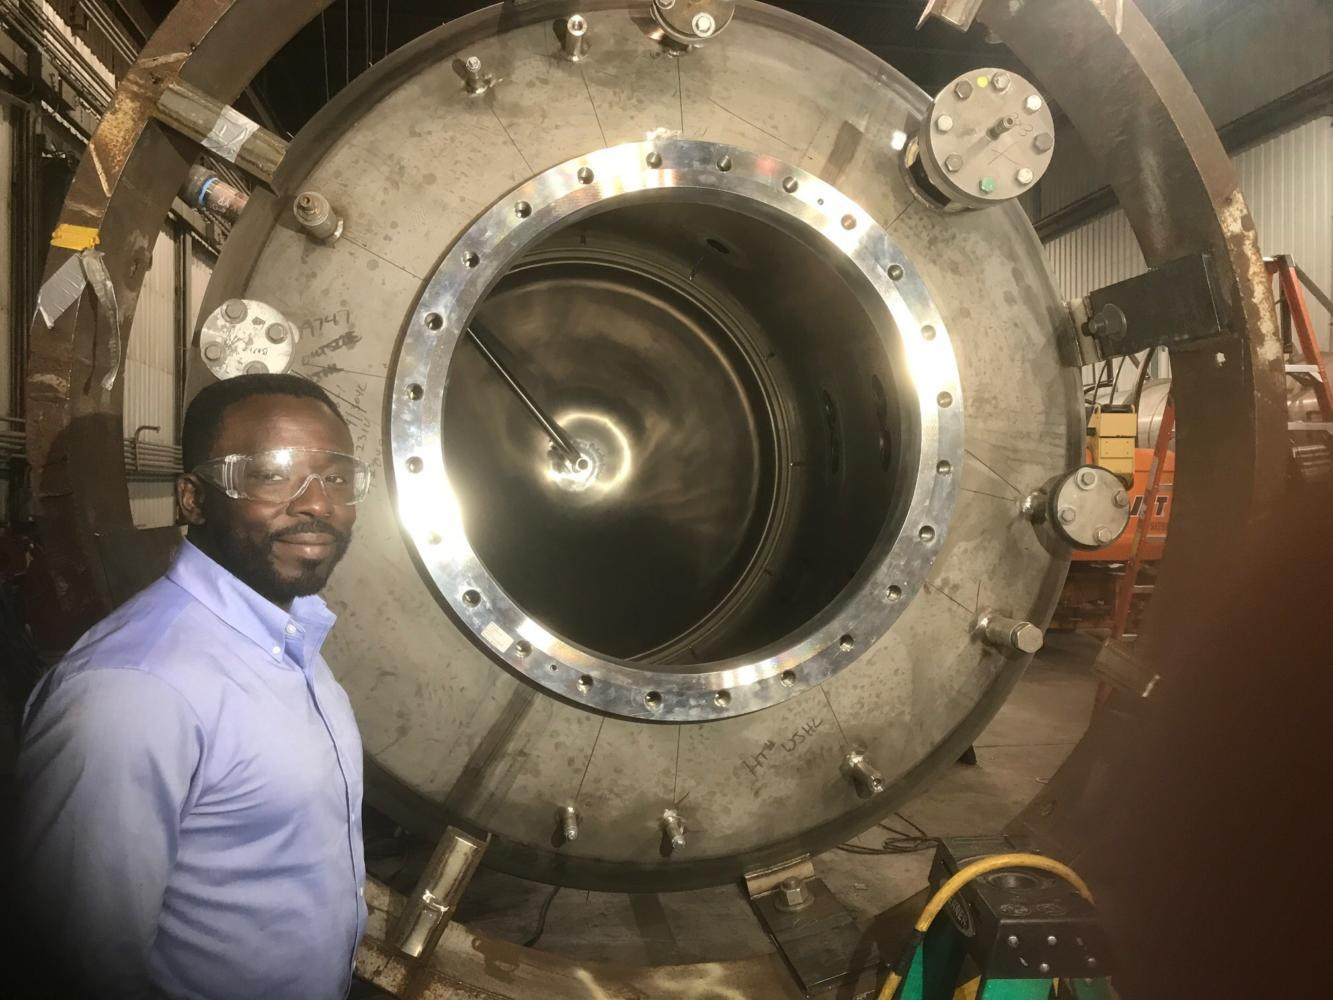 Sola Talabi, a Pitt alumnus and founder of Pittsburgh-Technical, is researching advanced nuclear reactors in Pittsburgh. (Courtesy Photo of Sola Talabi)